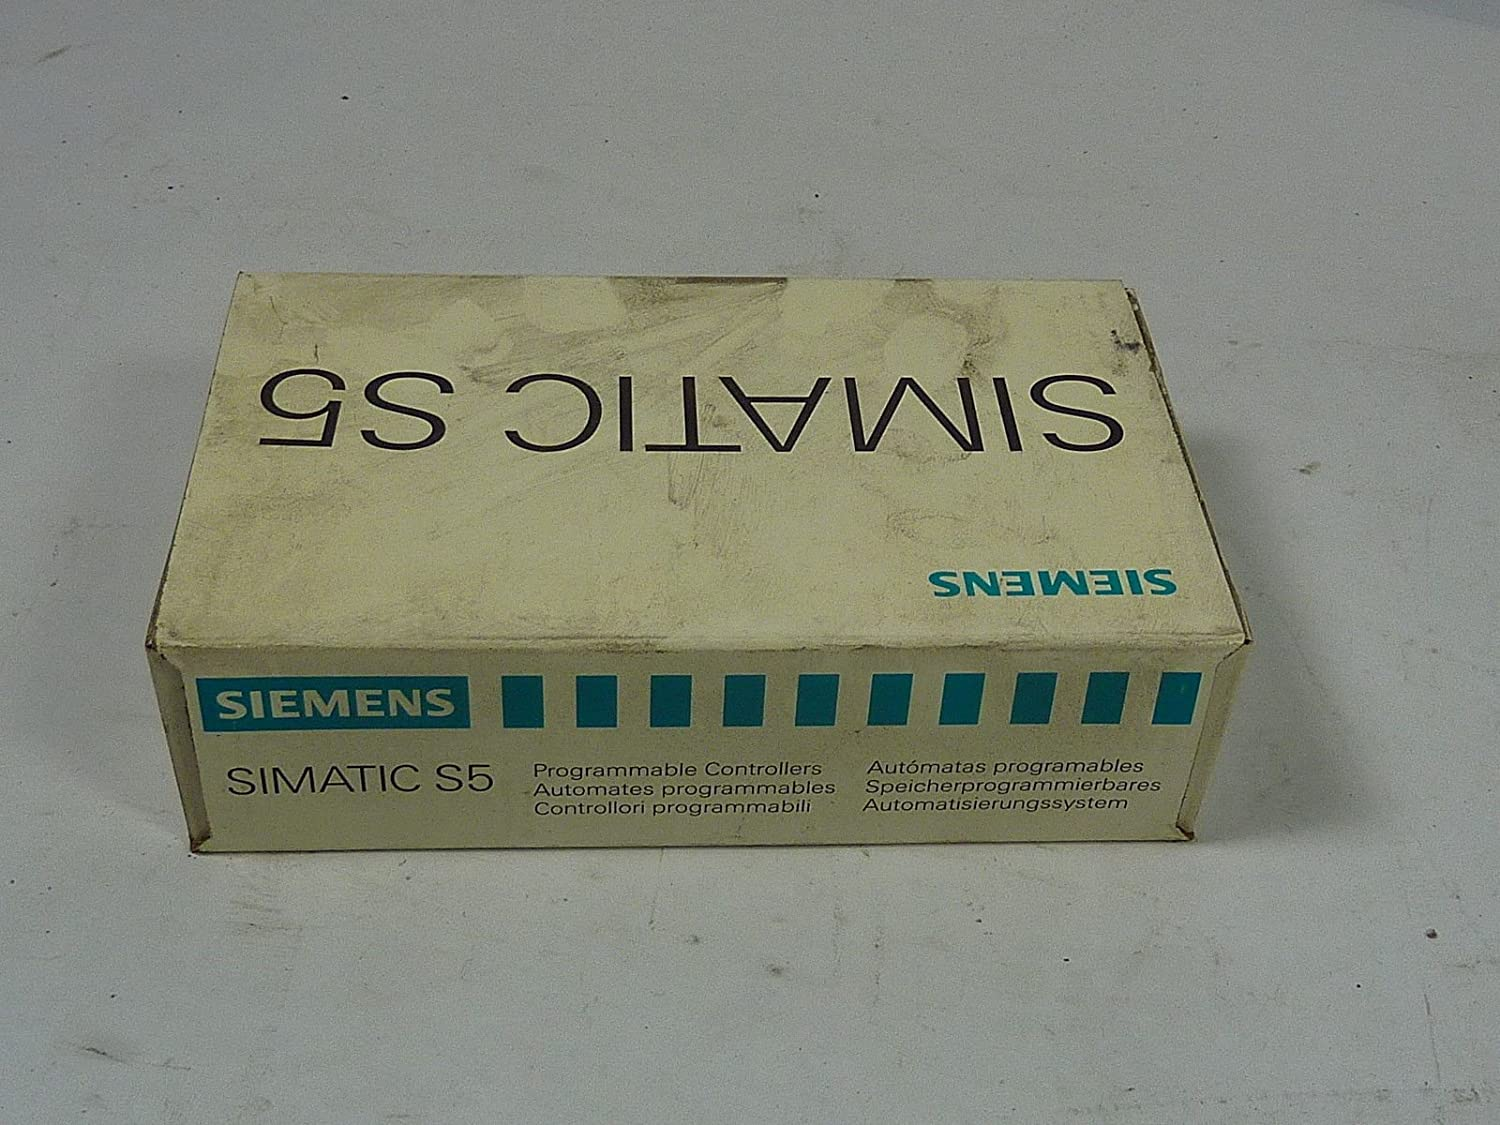 SIEMENS 6ES5700-8MA11 Discontinued by Manufacturer 01/10/2004, Bus Module, SIMATIC S5, for S5-100U/ET, with Terminal Block F, Screw Mount